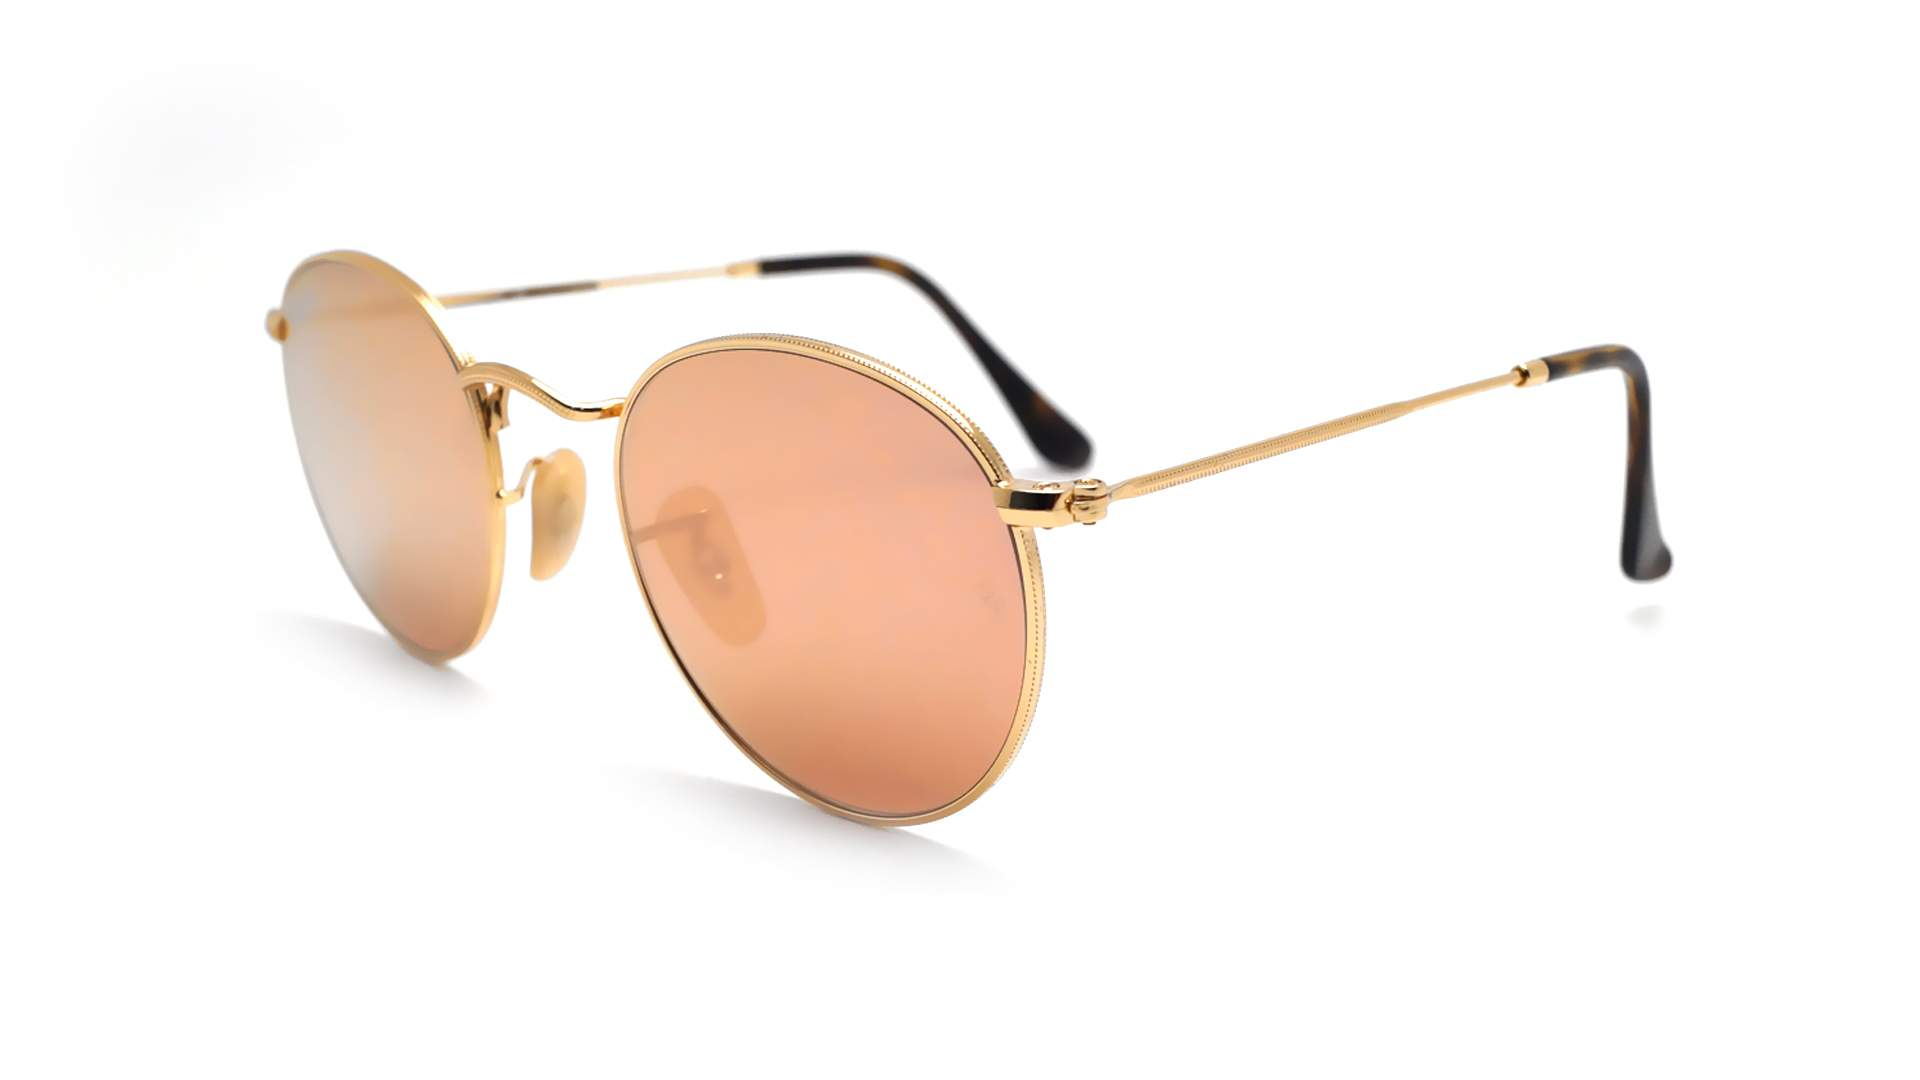 771763c0ad ... best sunglasses ray ban round metal flat lenses rb3447n 001 z2 47 21  gold small mirror